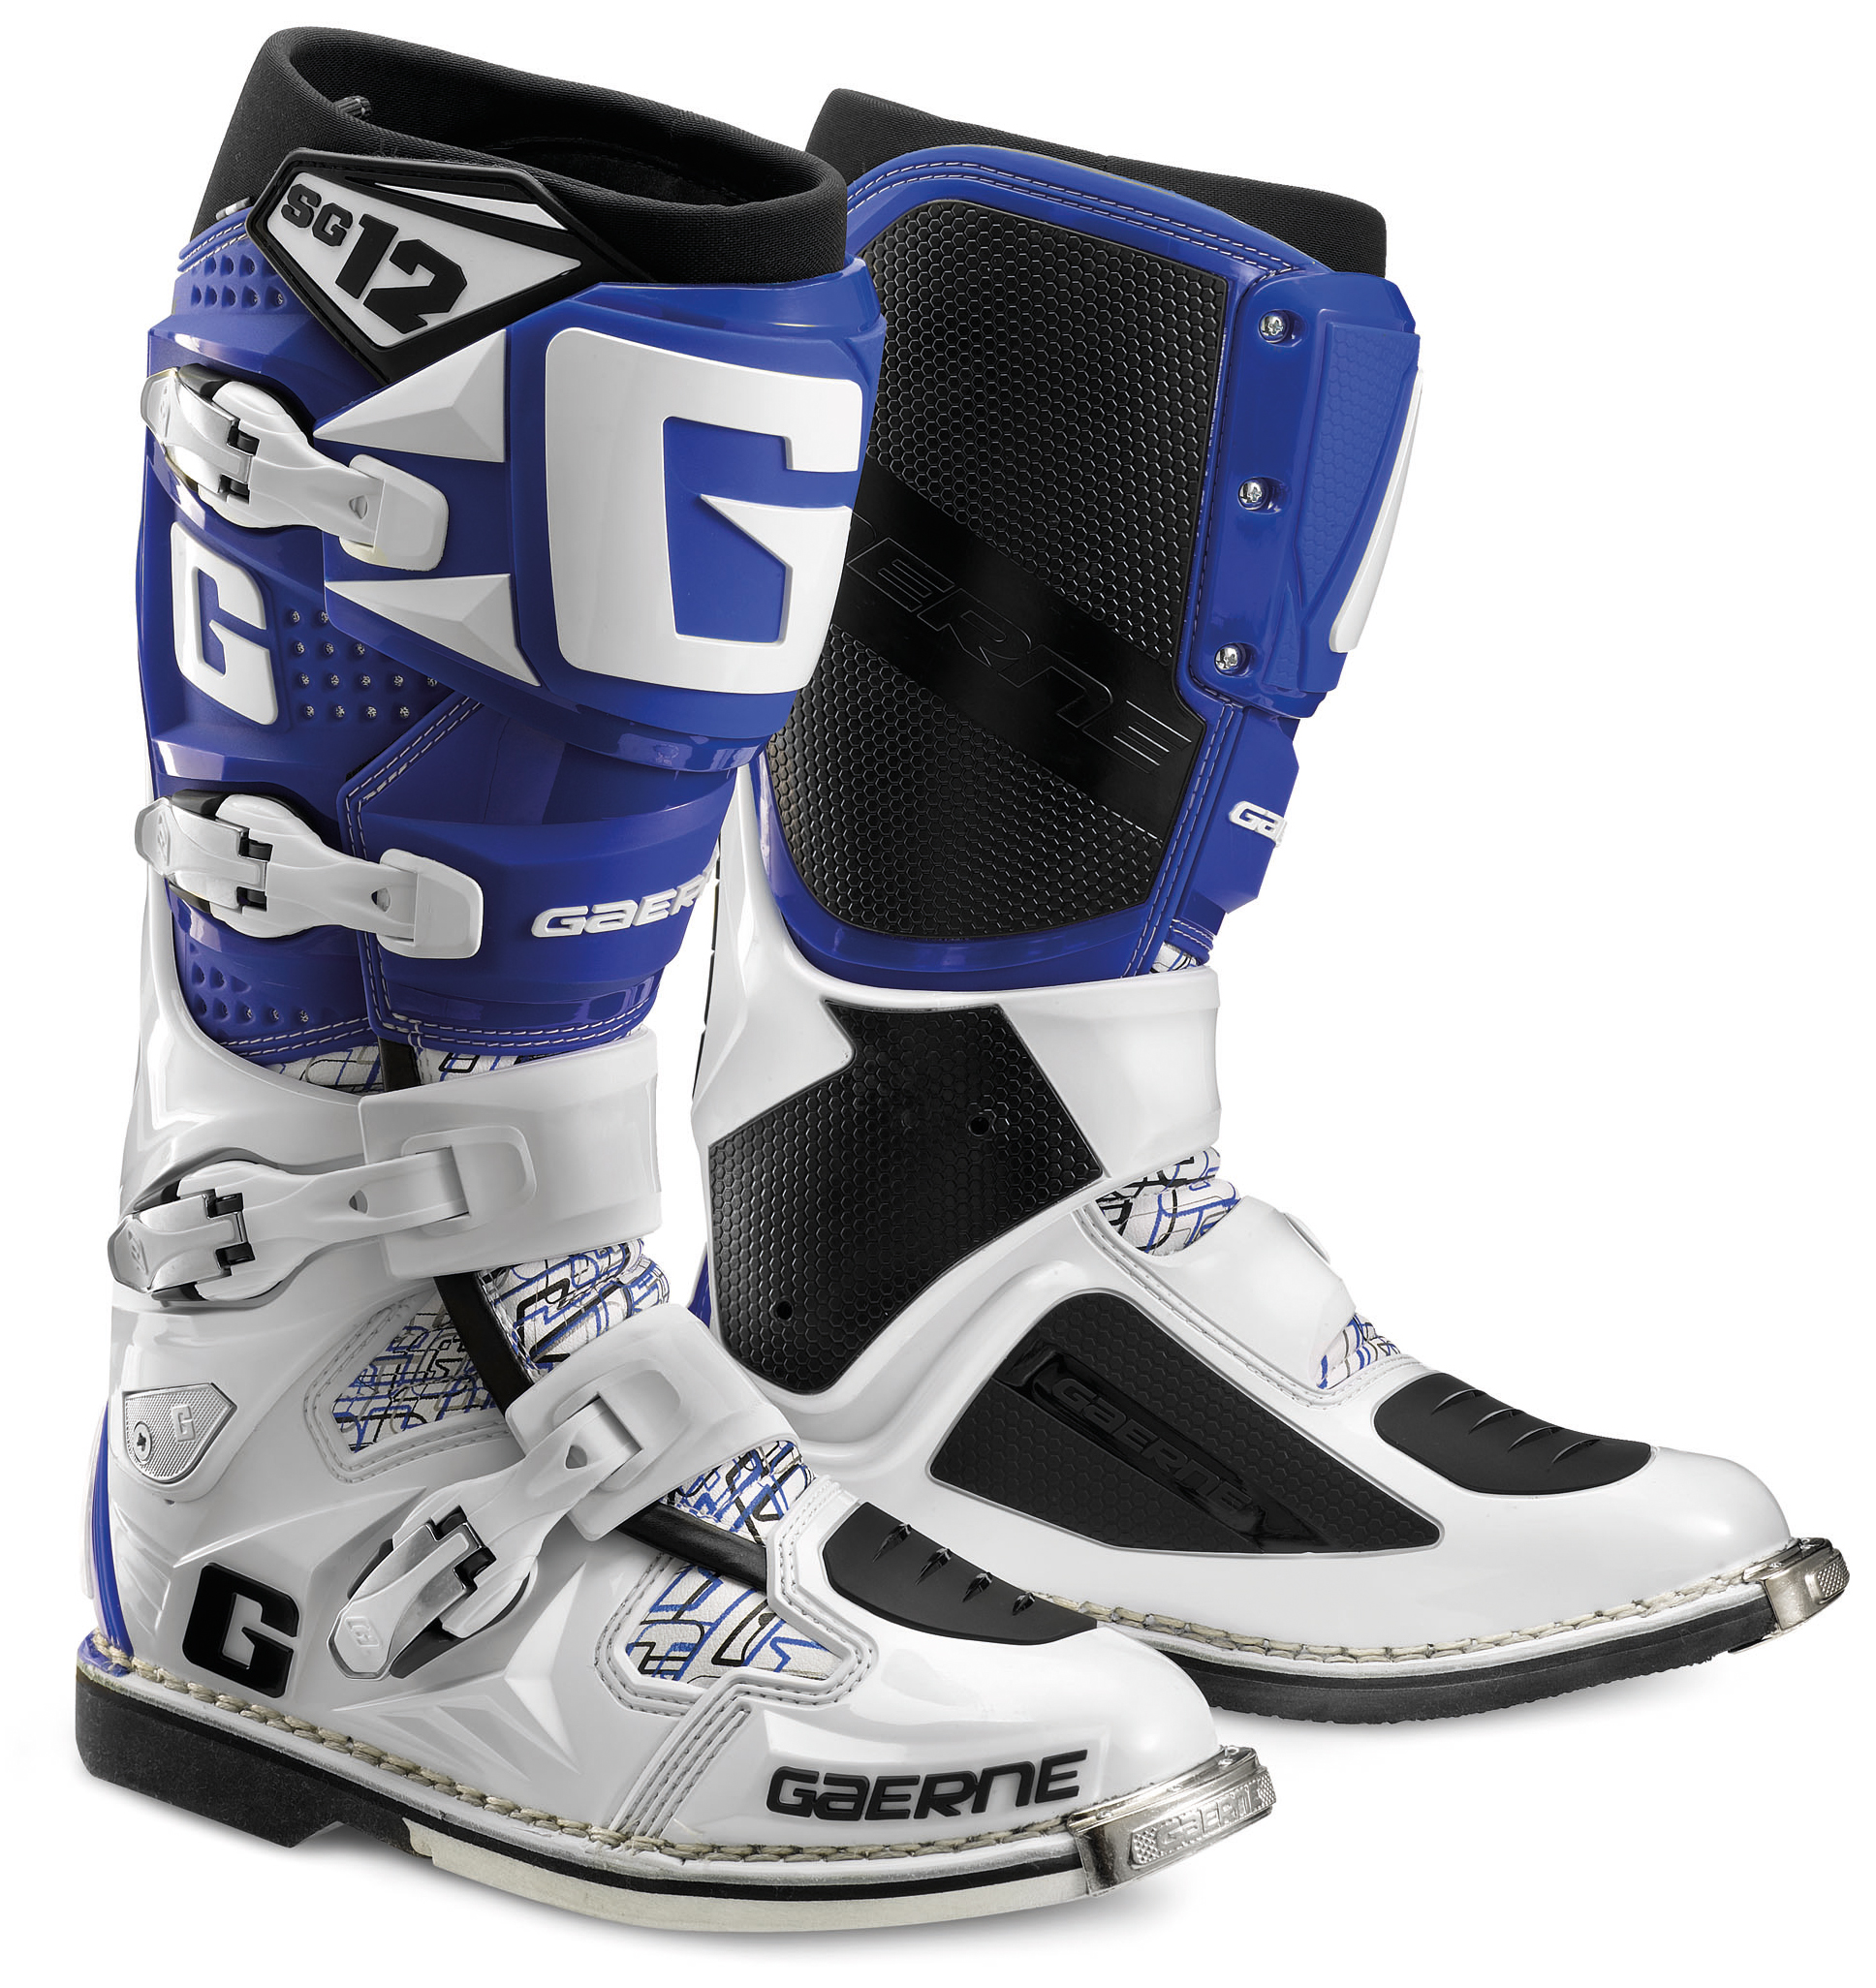 gaerne sg12 boot white blue motocross equipment motocross clothing from extremeworks mx. Black Bedroom Furniture Sets. Home Design Ideas